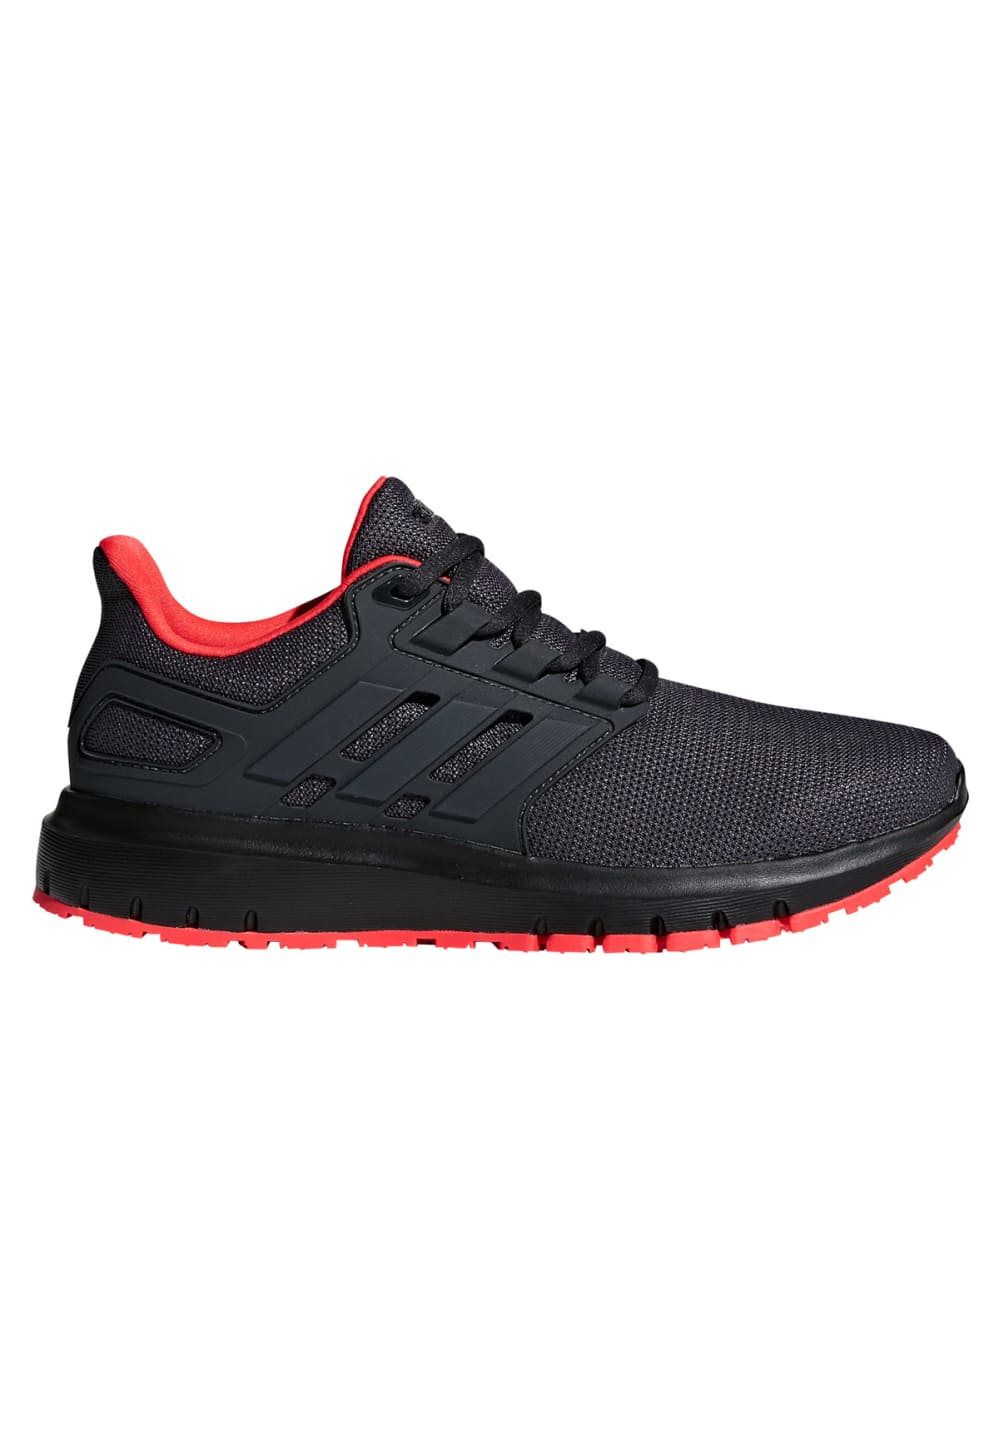 buy online f25c1 2febd Next. -40%. This product is currently out of stock. adidas. Energy Cloud 2 W  - Running shoes for Women